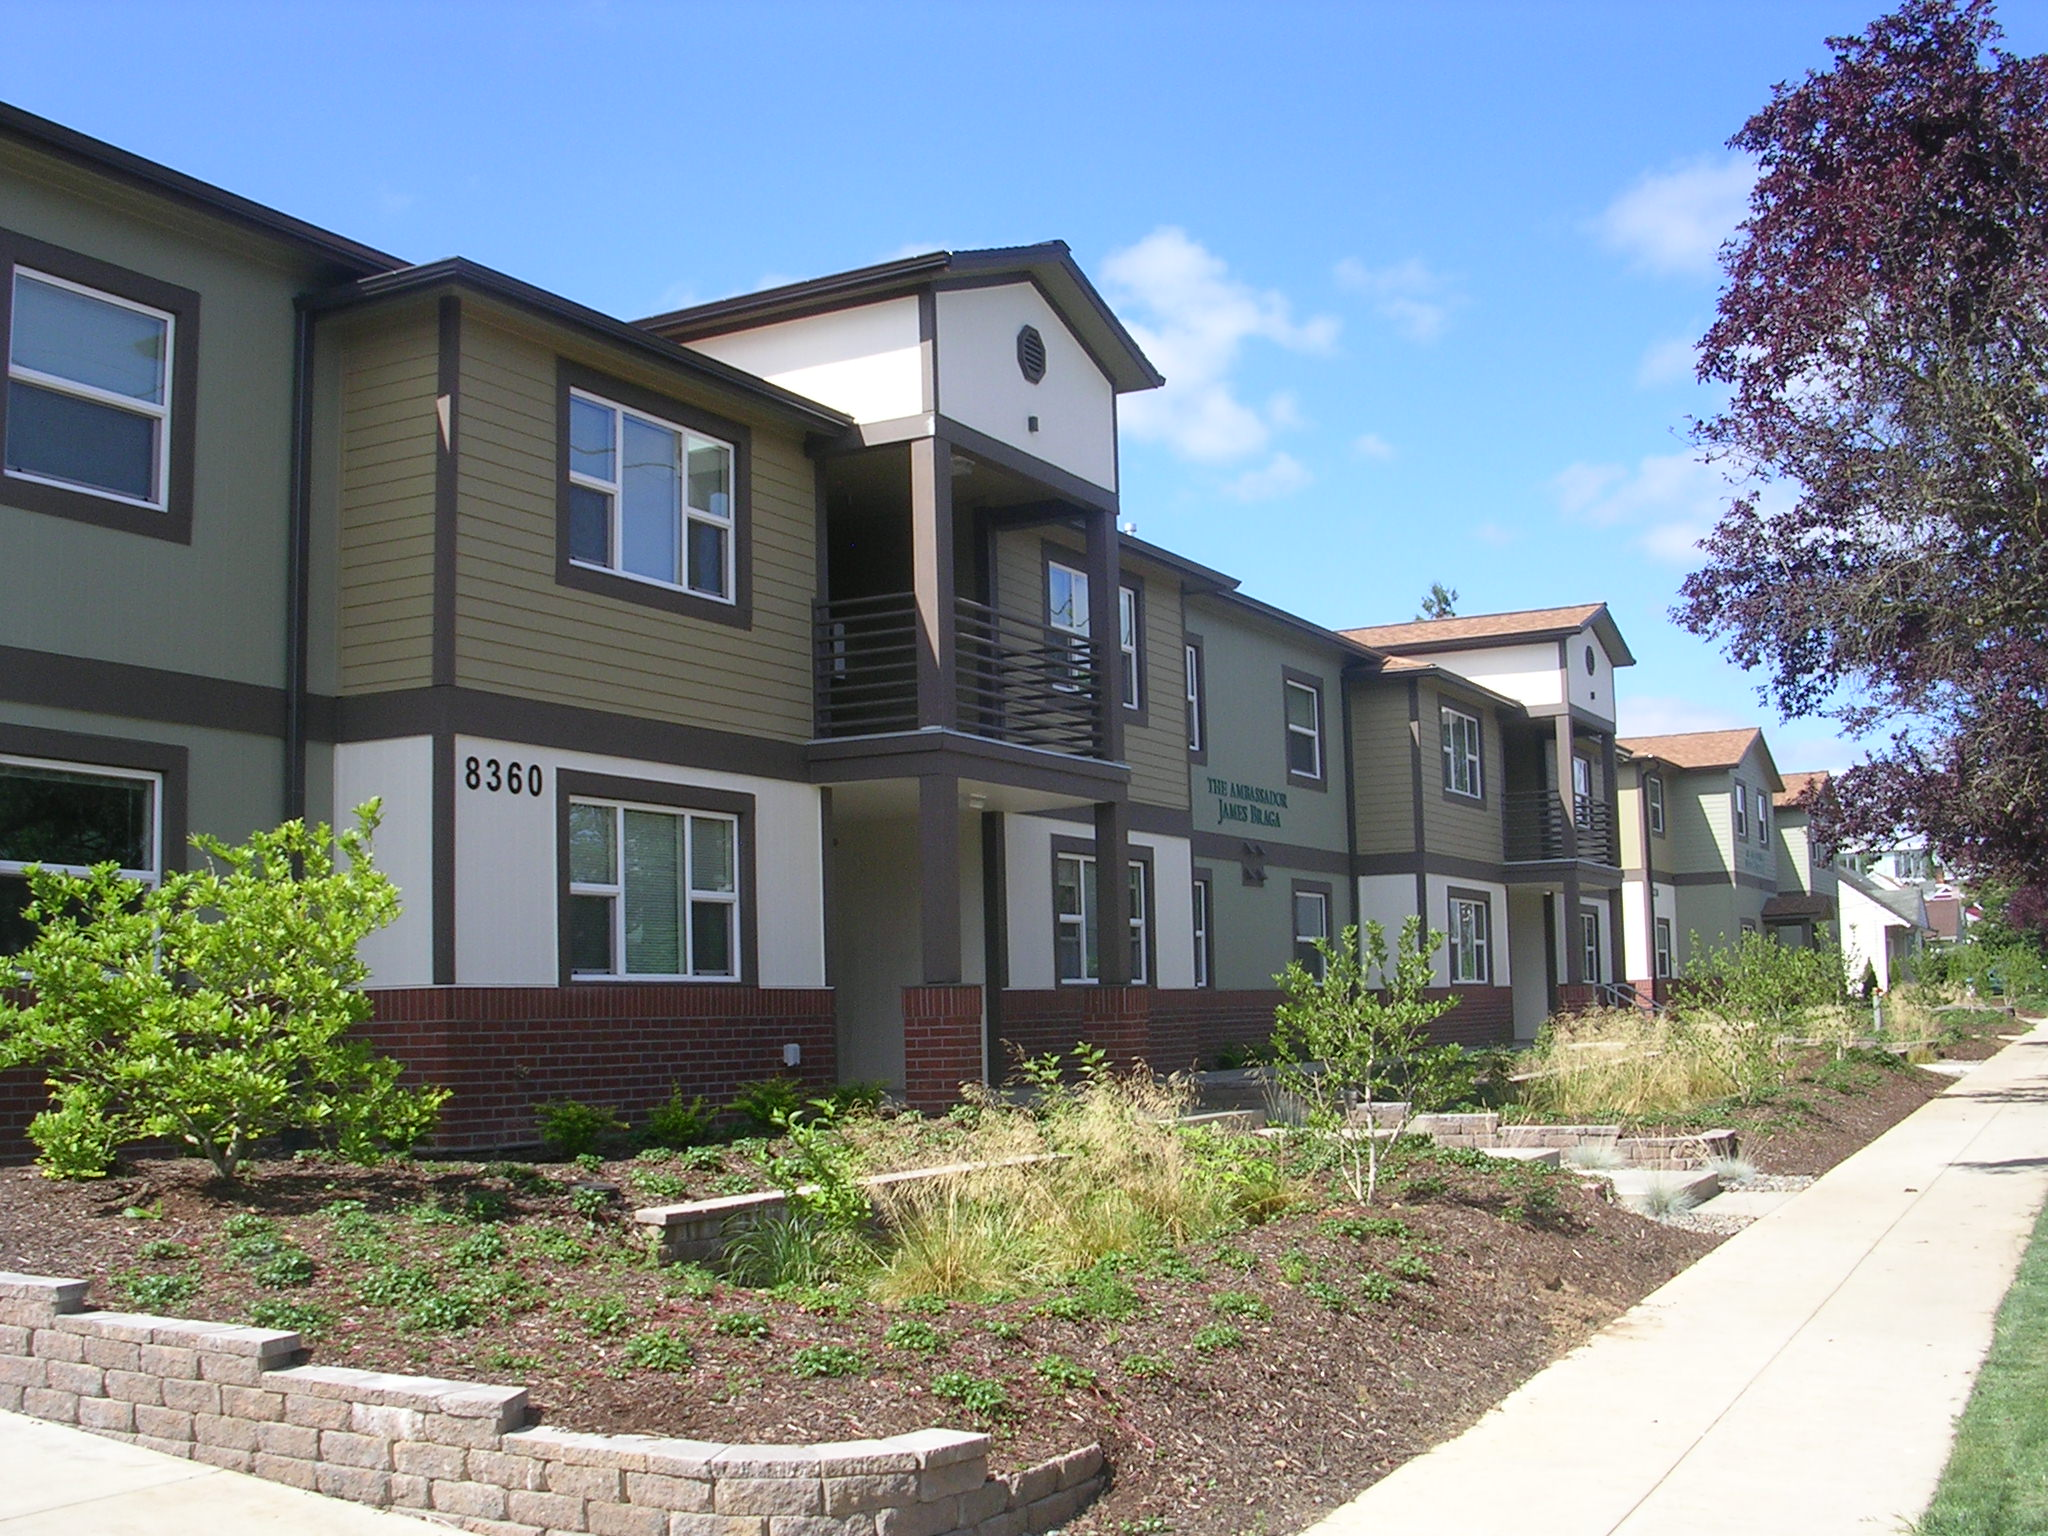 Multnomah U. - Student Housing